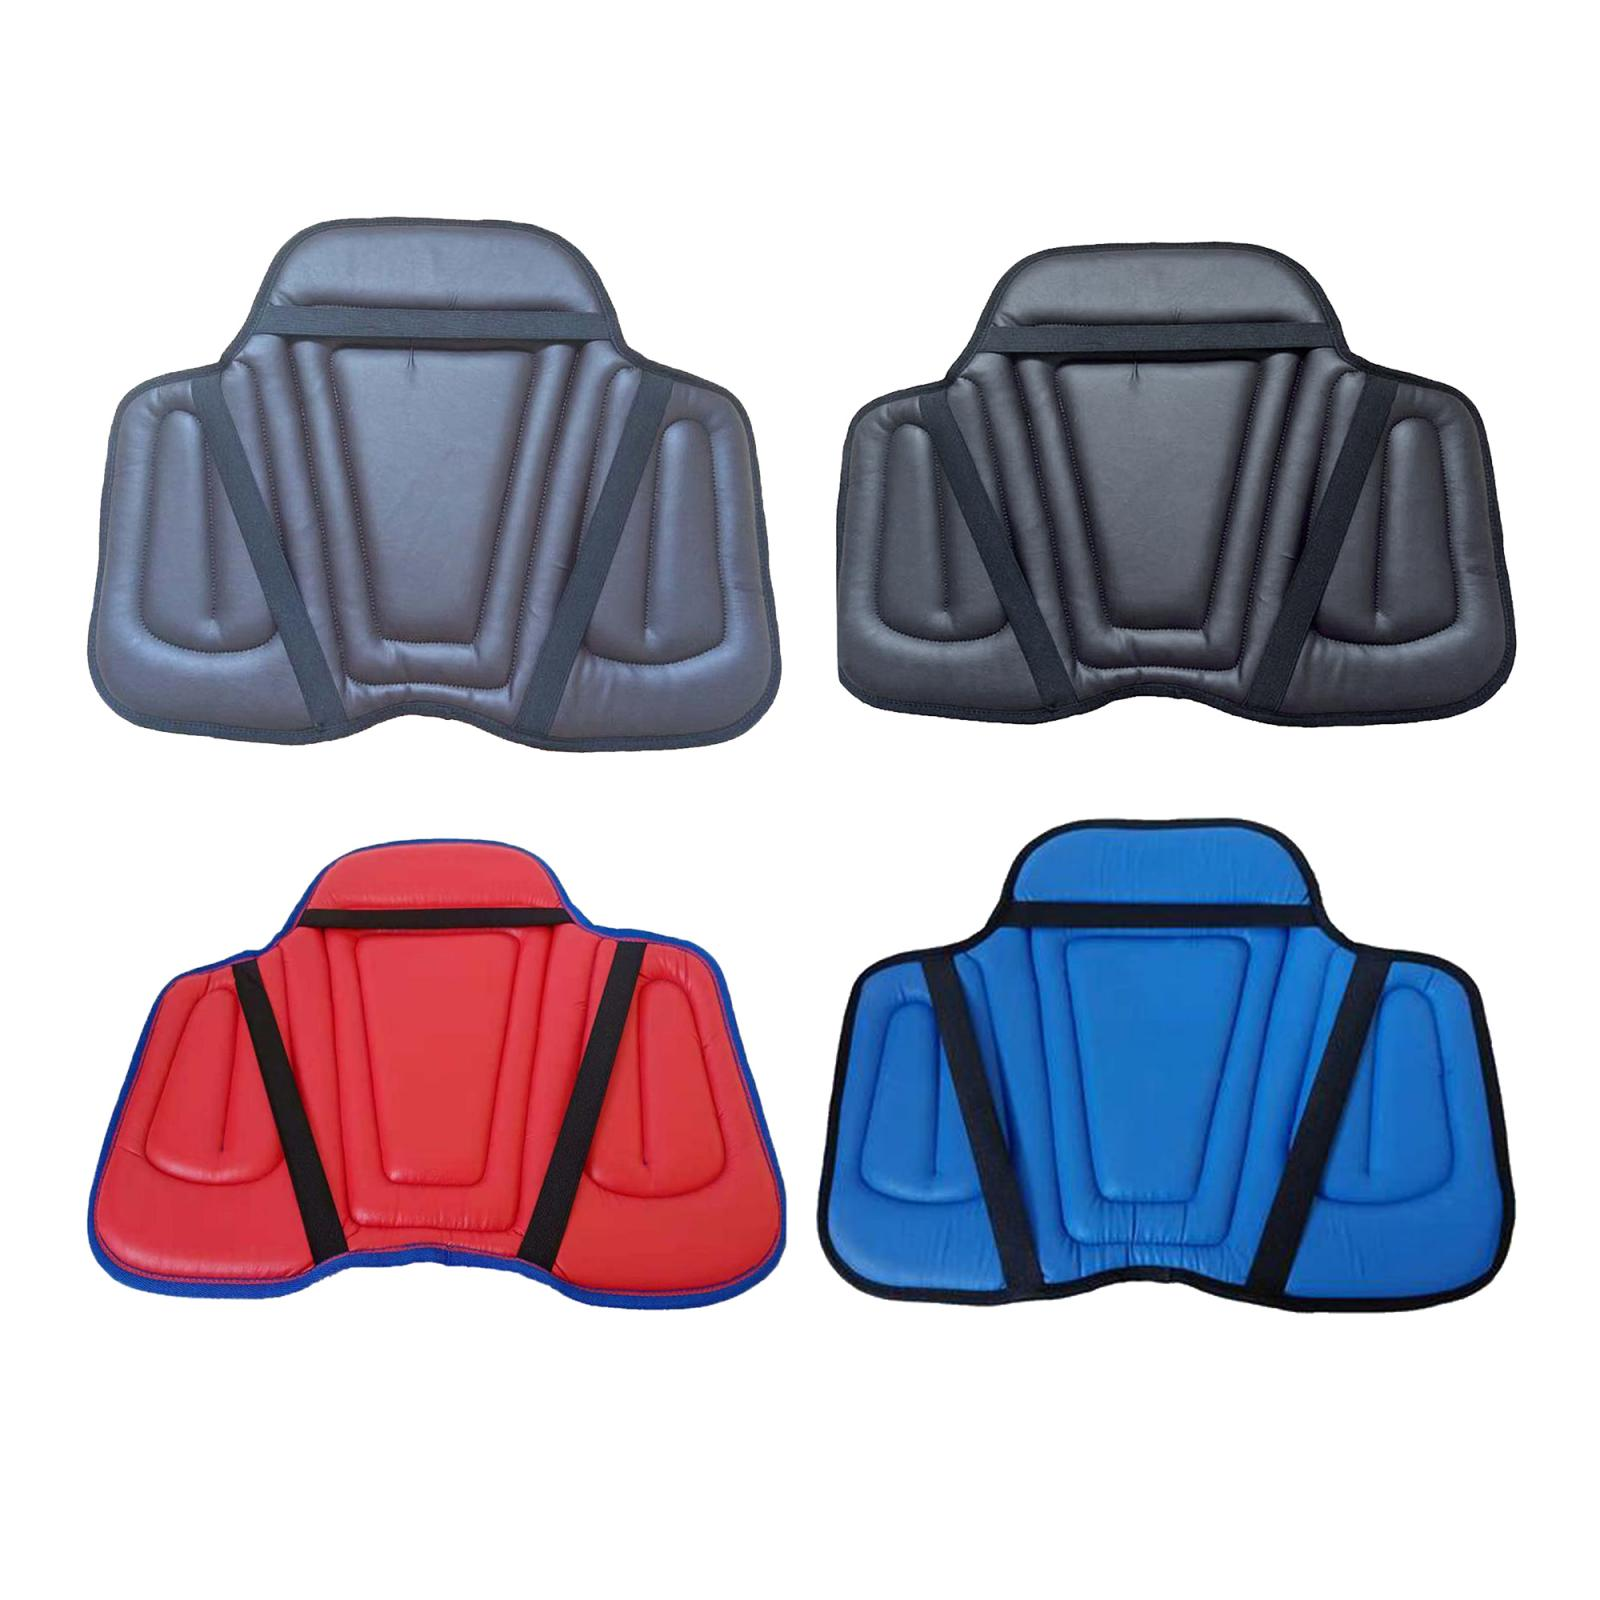 Horse Riding Saddle Pad Breathable Seat Cushion Outdoor Equestrian Equipment